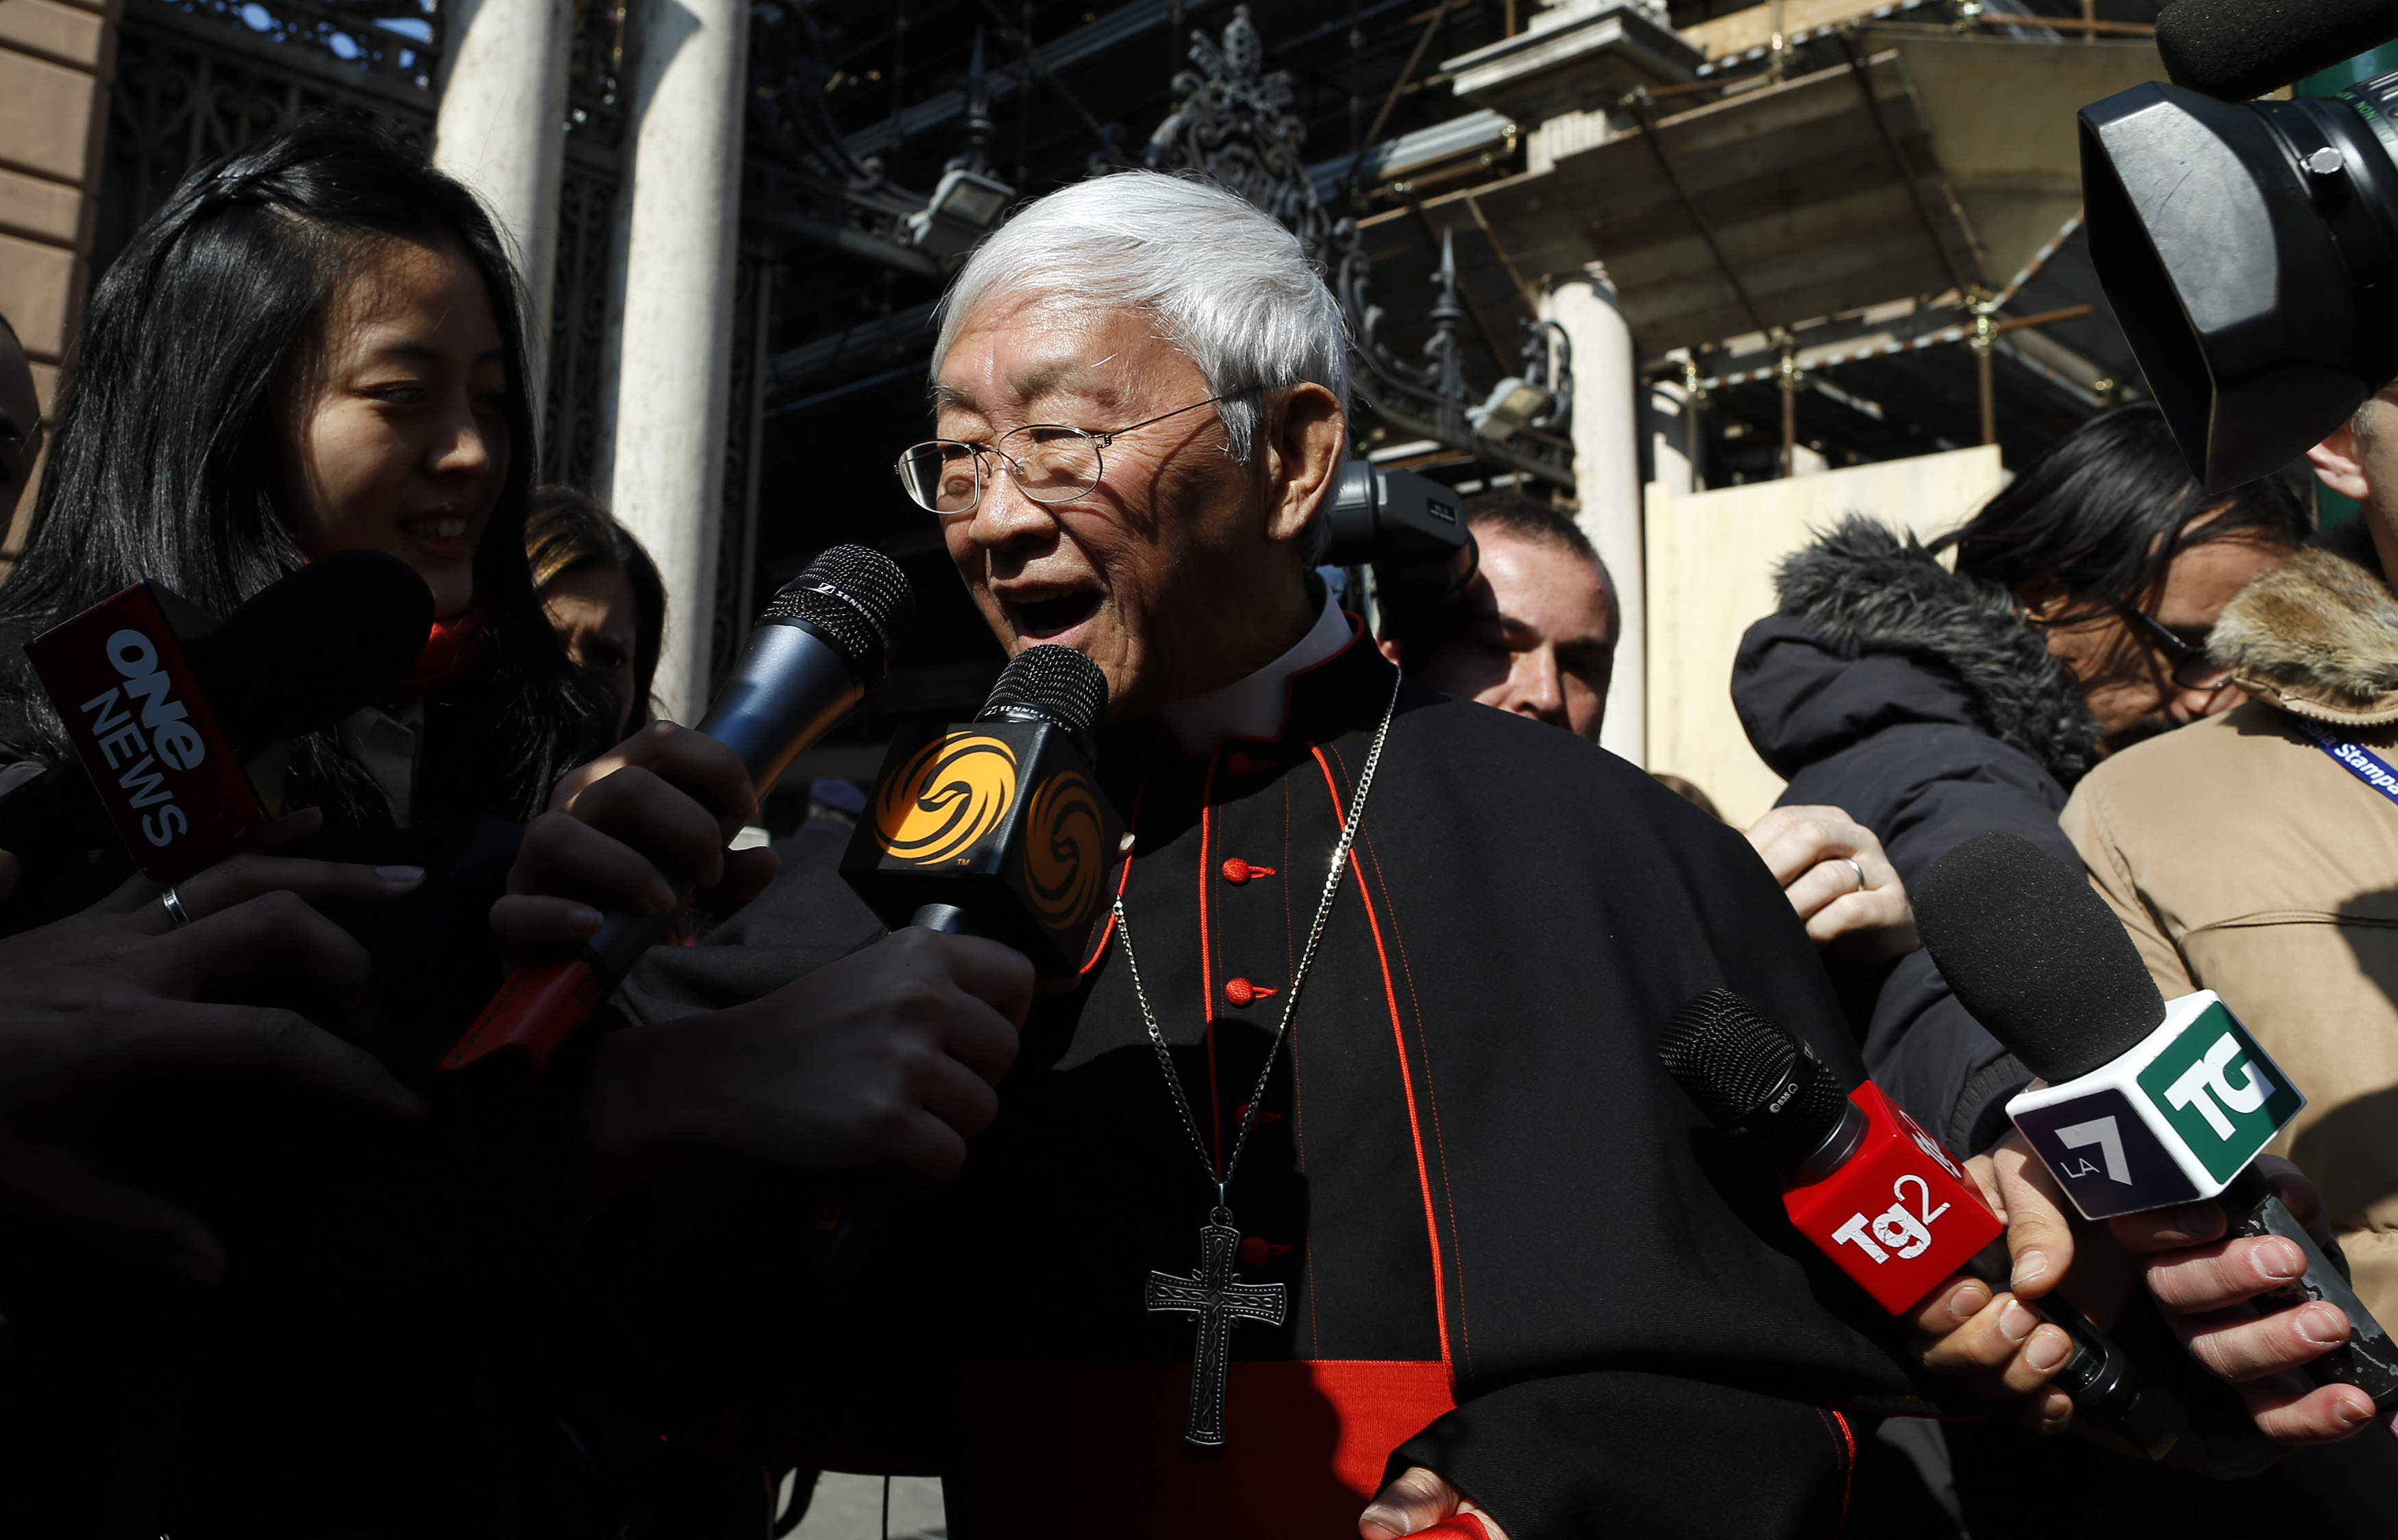 Cardinal Joseph Zen Ze-kiun of China is surrounded by media as he walks near St. Peter square in Rome February 28, 2013. Pope Benedict left the Vatican on Thursday after pledging unconditional obedience to whoever succeeds him to guide the Roman Catholic Church at one of the most crisis-ridden periods in its 2,000-year history. REUTERS/Alessandro Bianchi